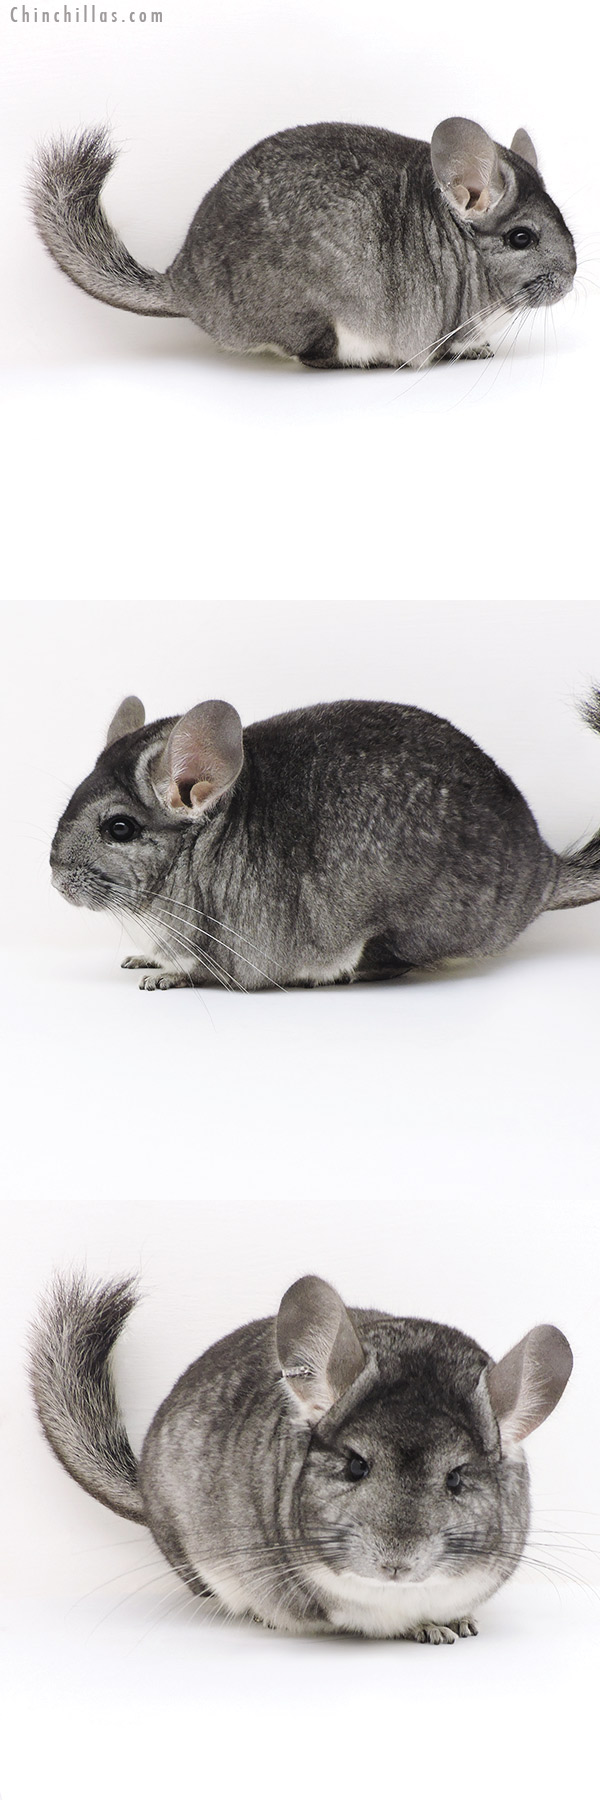 17228 Standard ( Sapphire & CCCU Royal Persian Angora Carrier ) Female Chinchilla